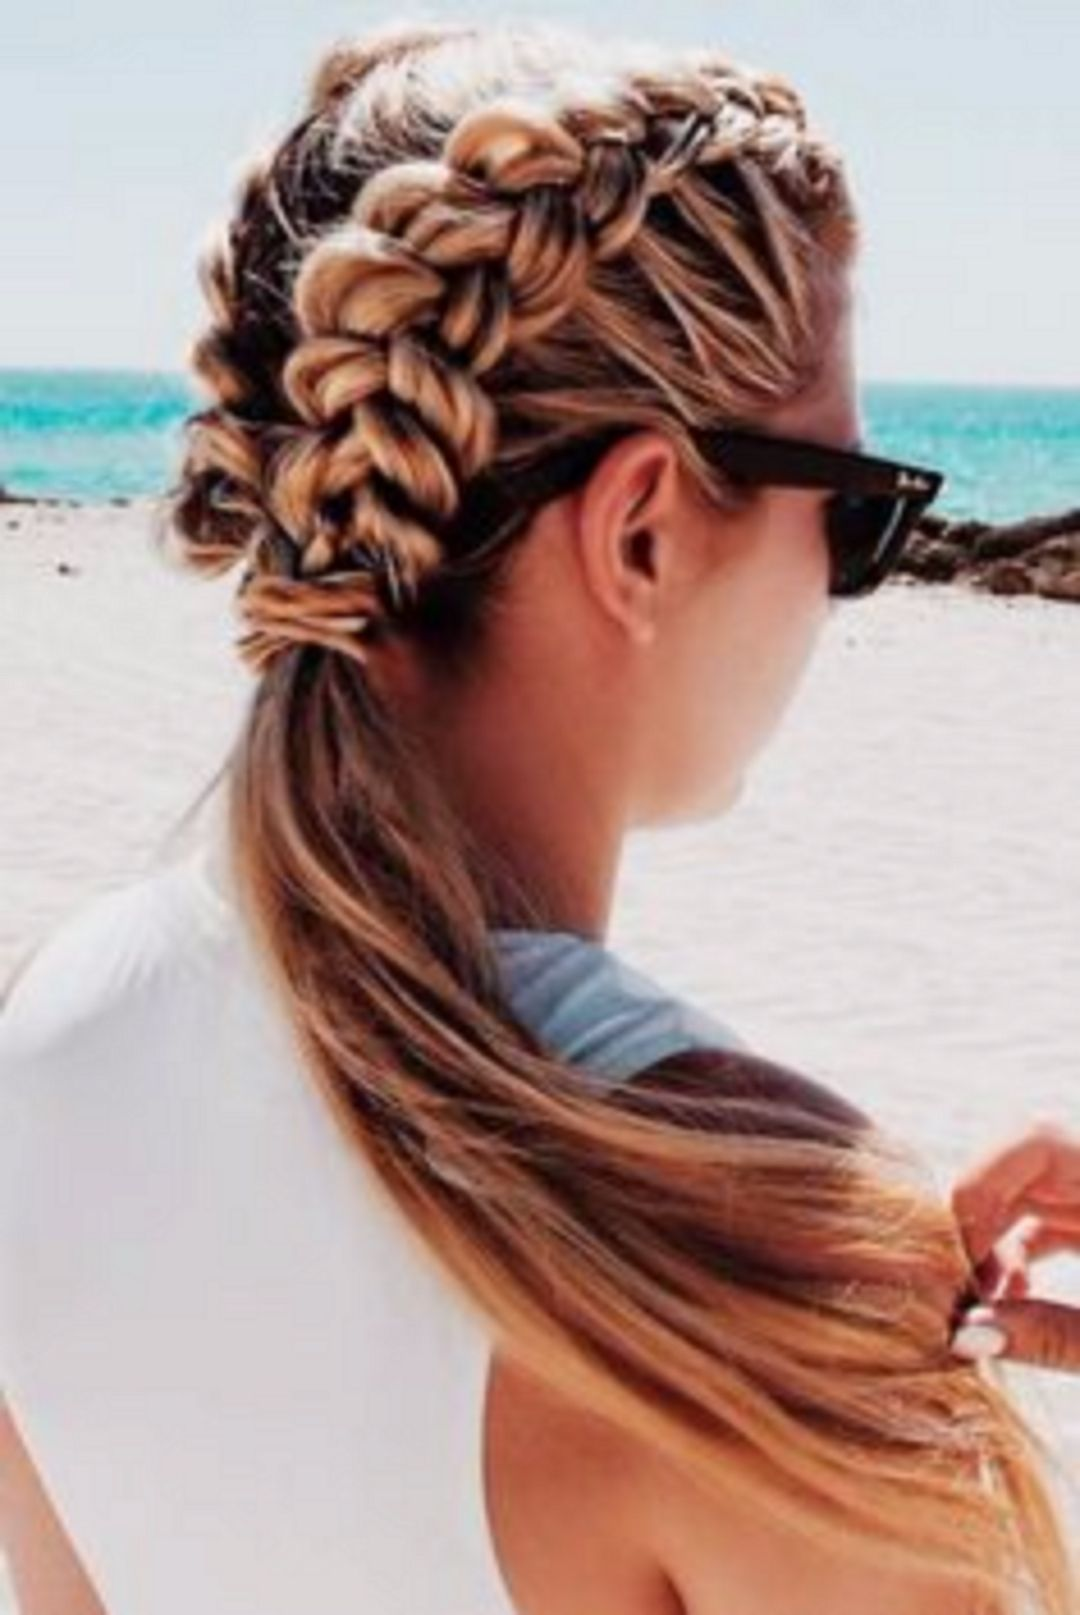 beautiful beach hairstyles ideas for summer beach